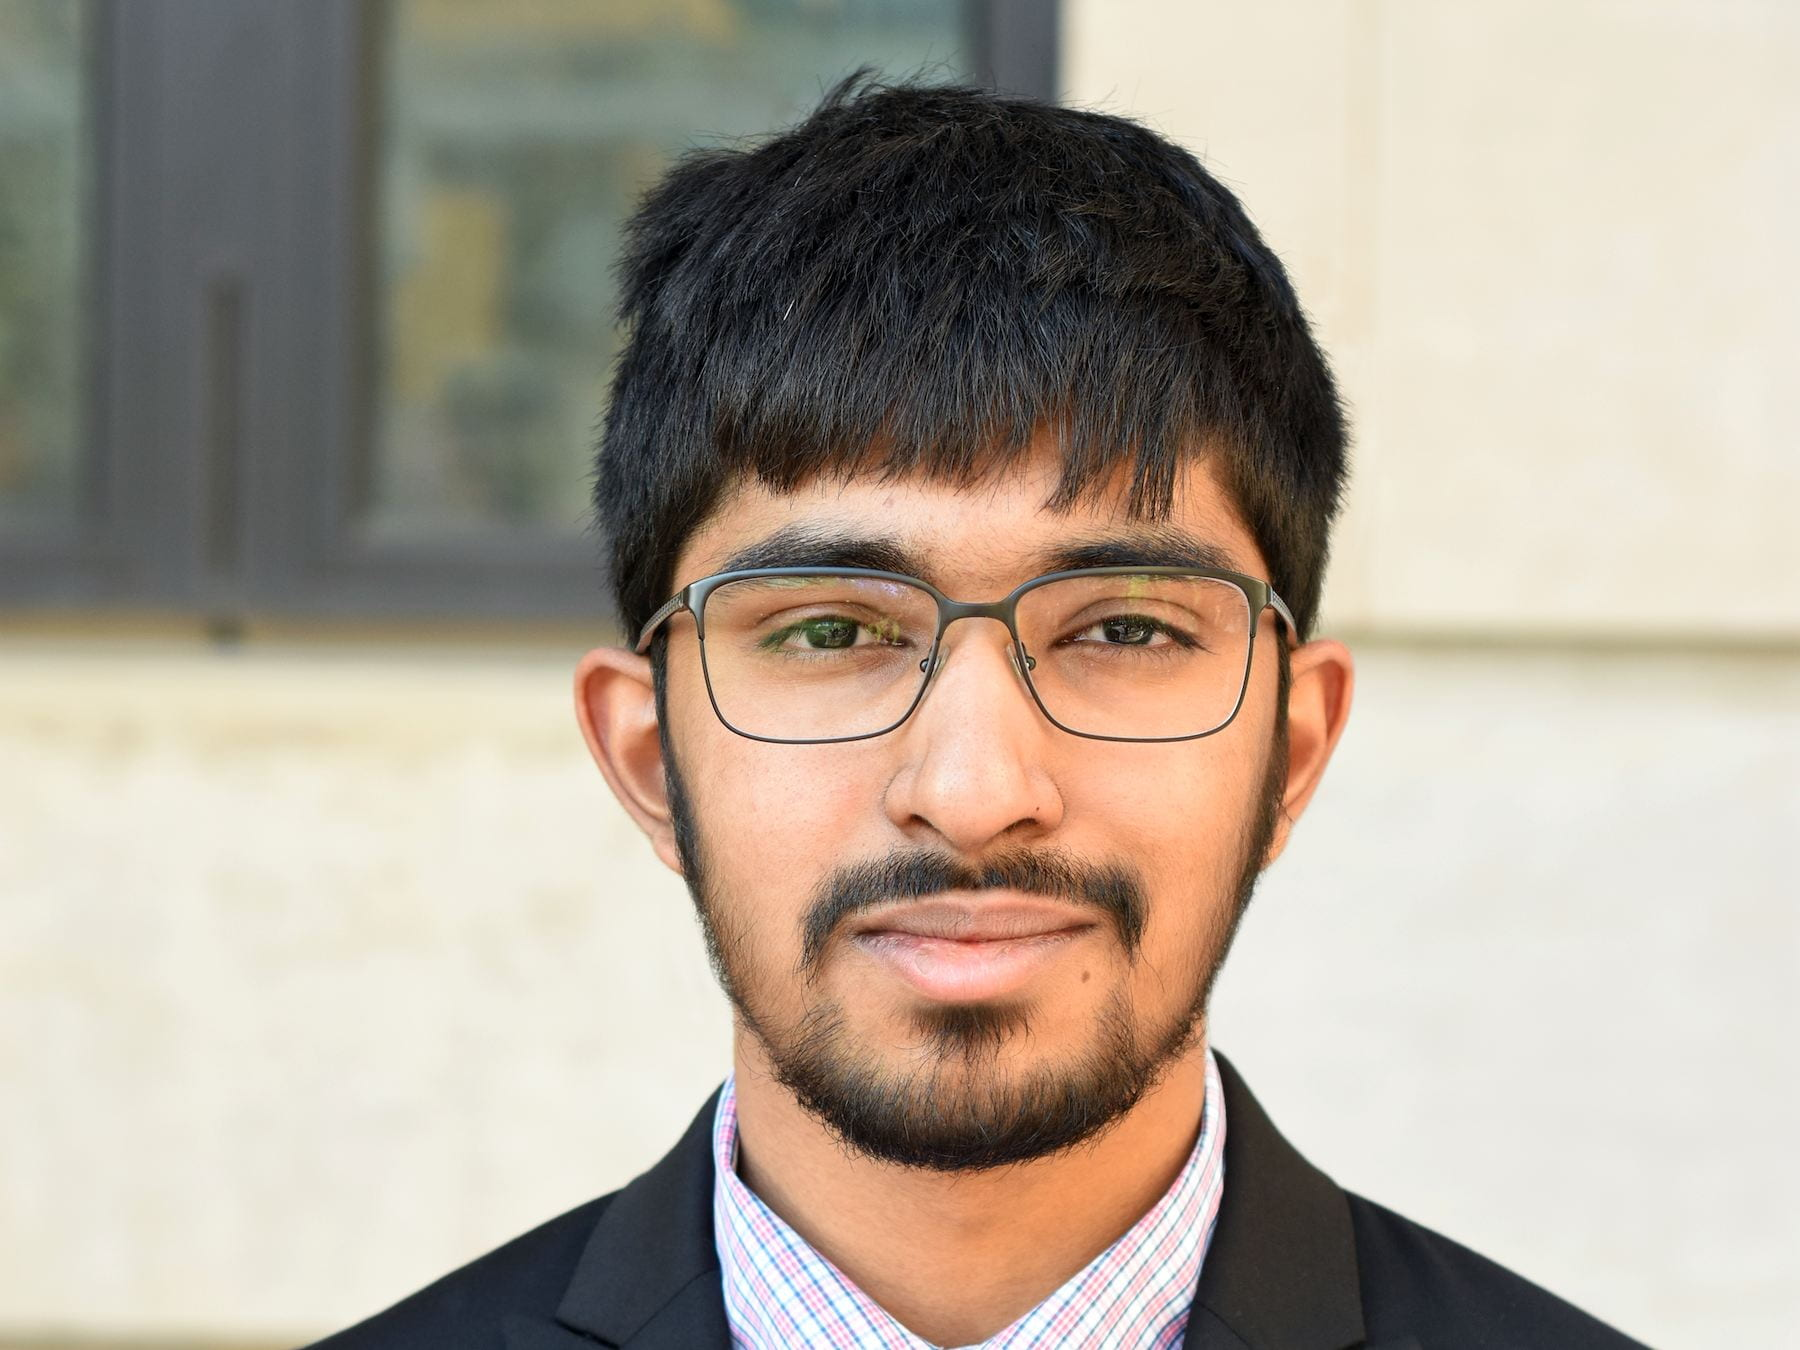 A photograph of current Cornell student Amogh